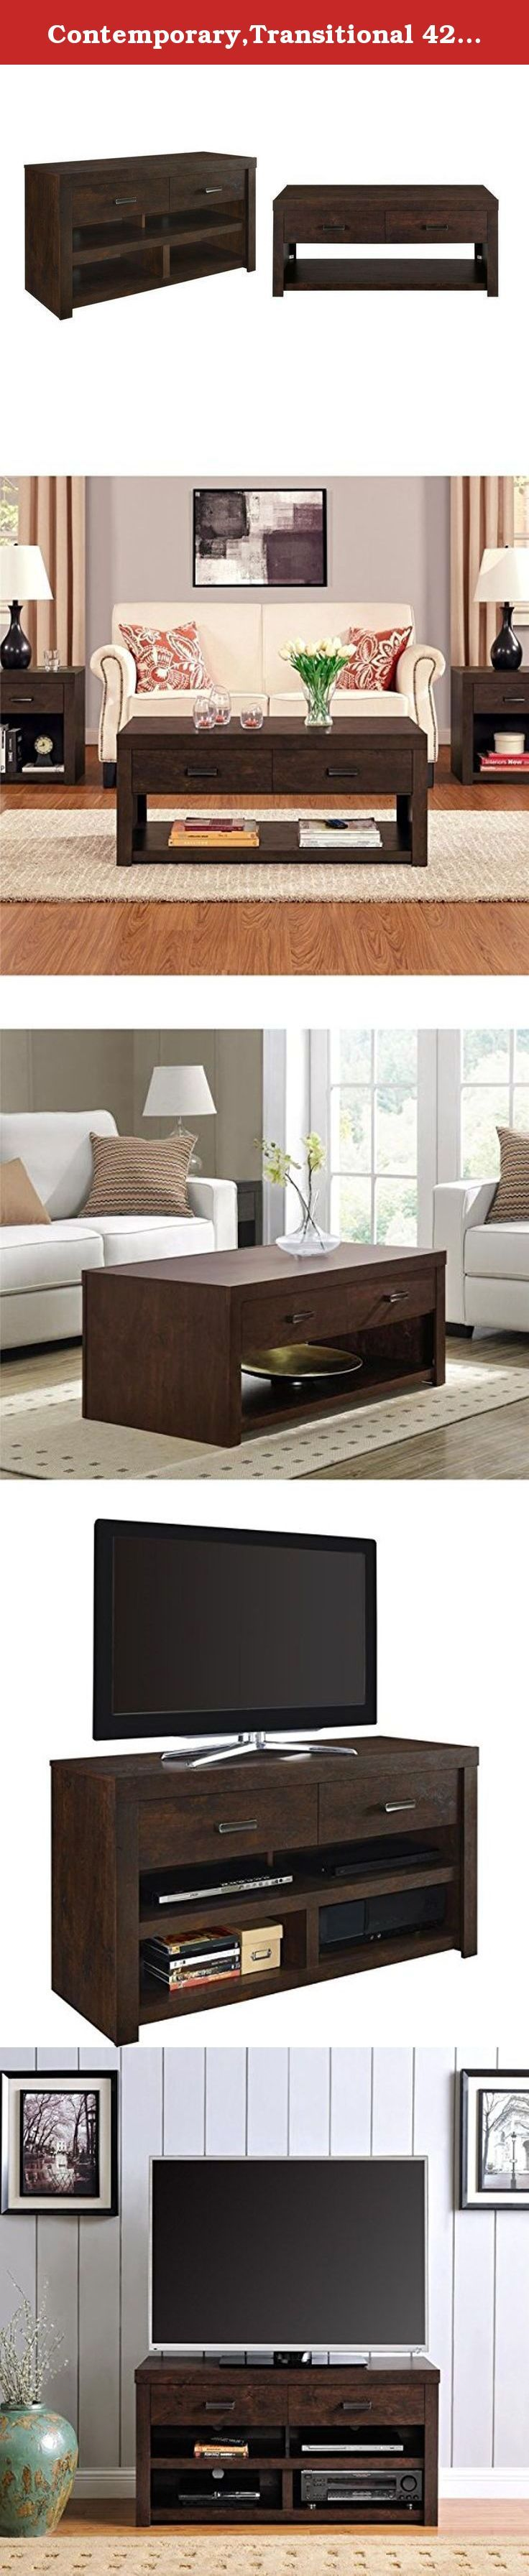 Contemporary,Transitional 42-inch TV Stand With Contemporary, Transitional Coffee Table. This beautiful TV stand accommodates up to a 42-inch flat screen TV. The four open shelves are designed to hold your DVD player, cable box, sound bar or gaming console. Use the two drawers to organize DVDs and video games.This Contemporary, Transitional 42-inch TV Stand requires assembly upon delivery. Keep your magazine or drink conveniently within arm's reach on the large top surface. Showcase your...